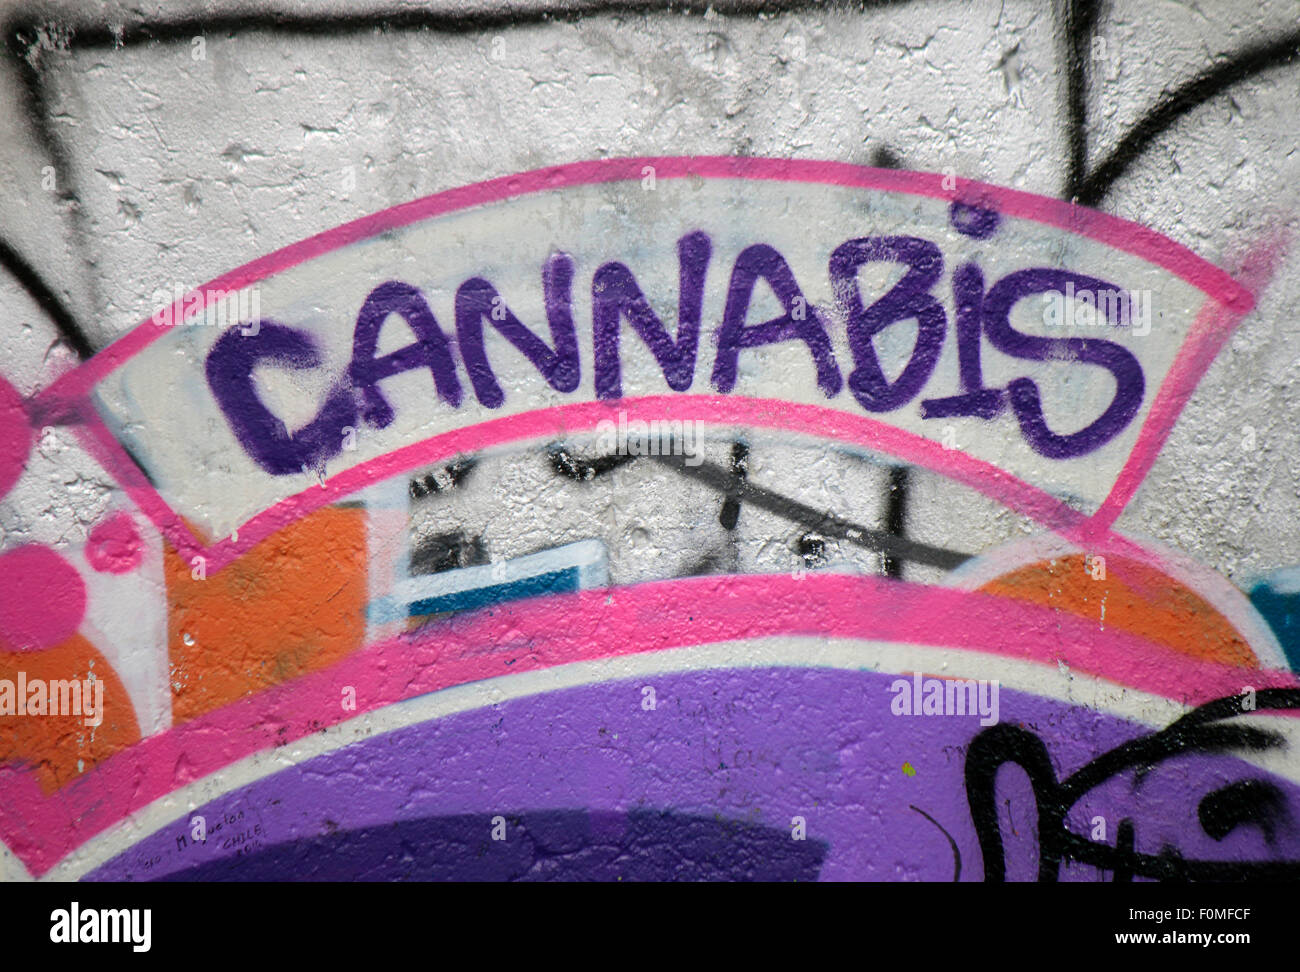 Le cannabis - Graffity, East Side Gallery, Berlin. Photo Stock